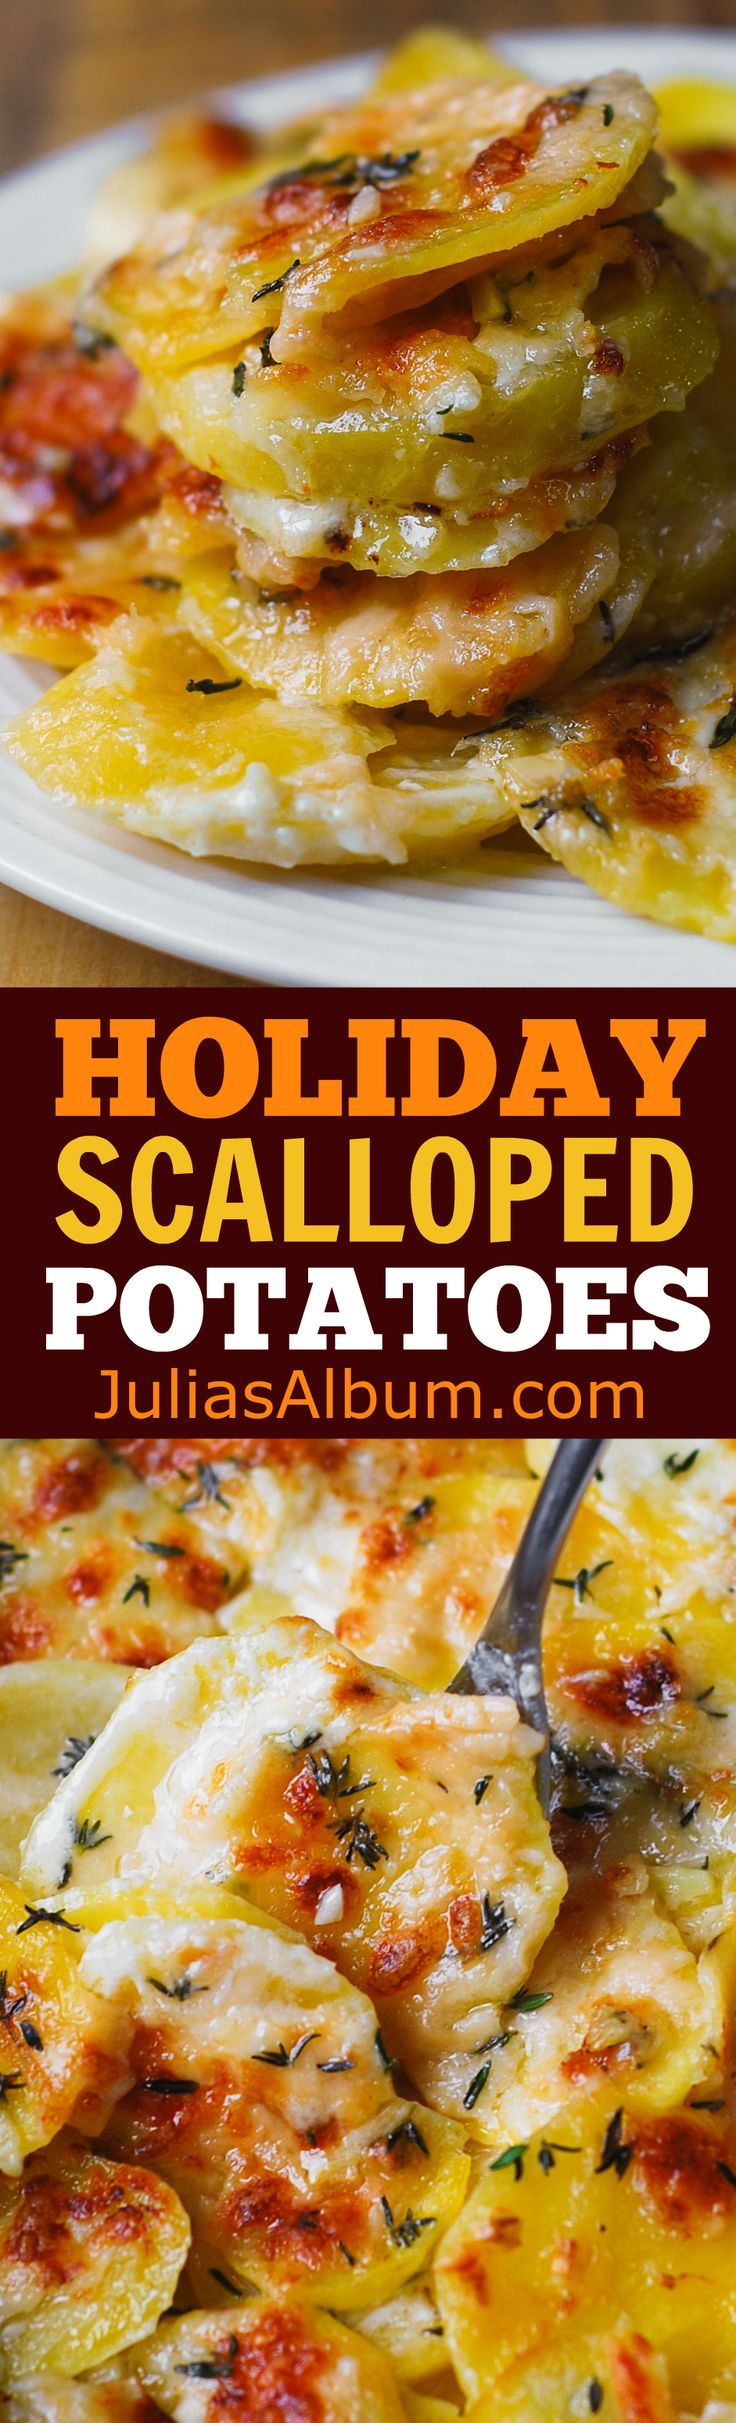 Easy, cheesy scalloped potatoes with garlic and thyme. #Holidays #Christmas #sides